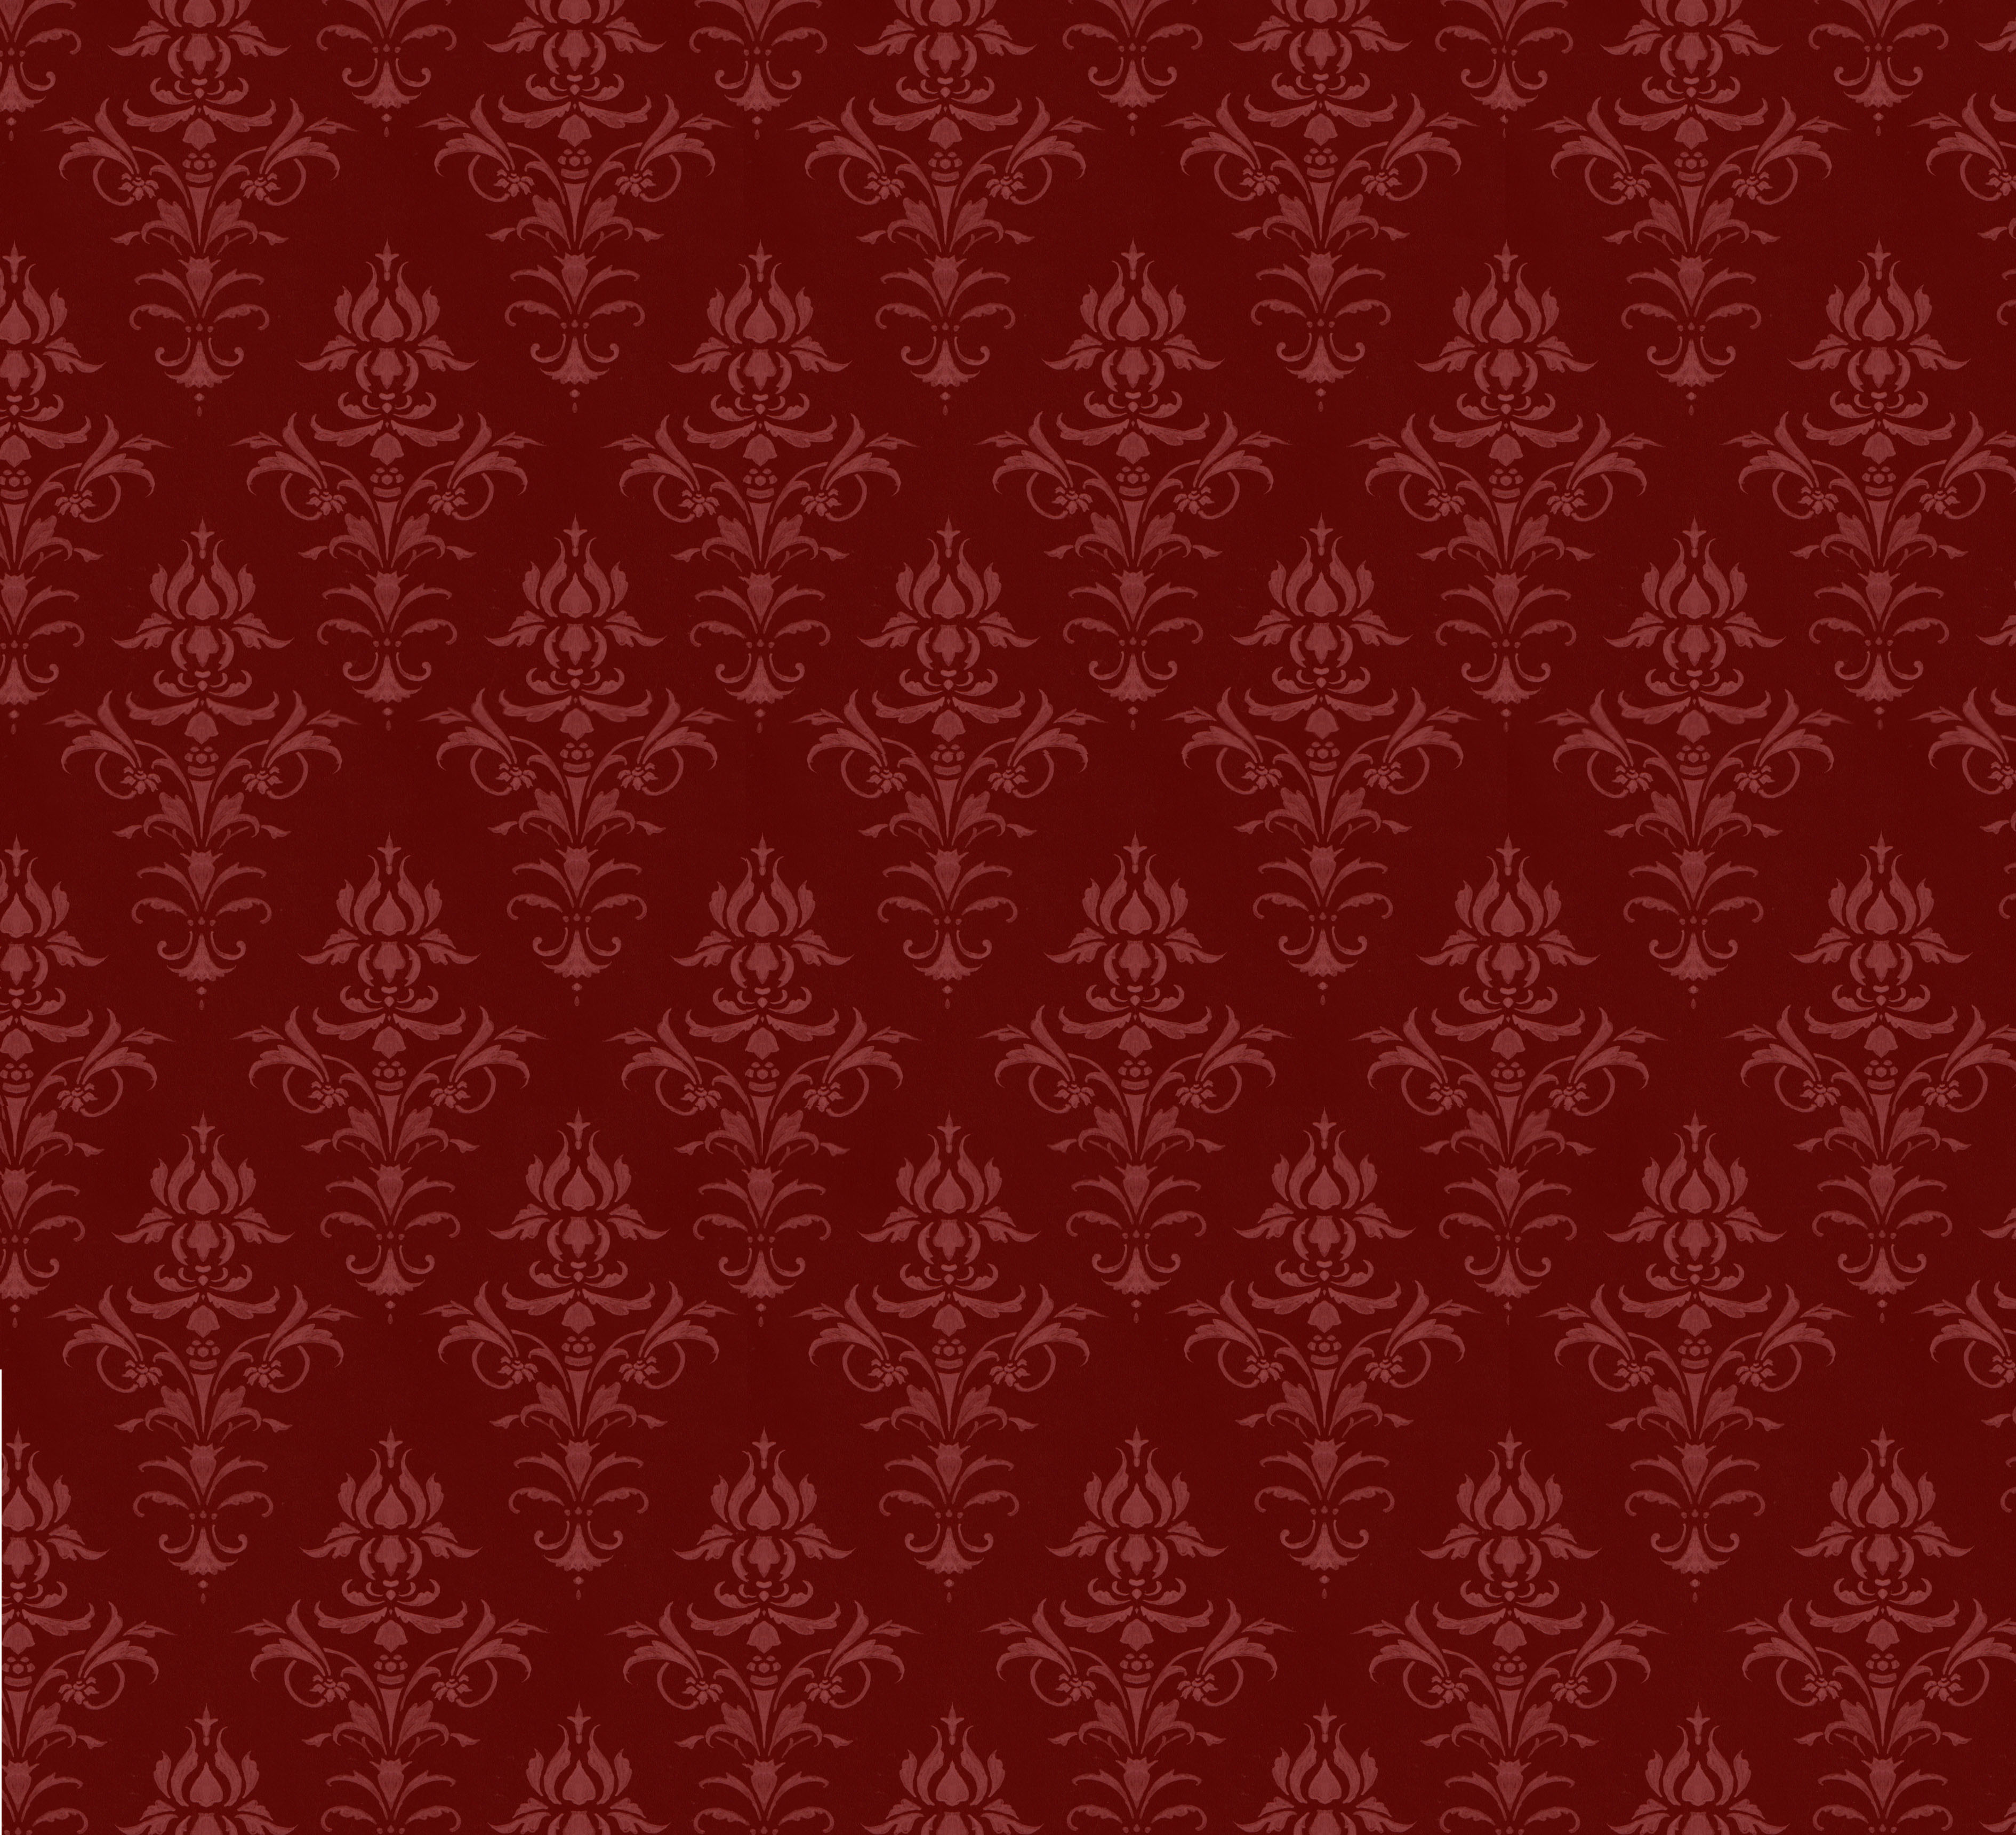 Red Wallpaper: Red Wallpaper By Dashinvaine